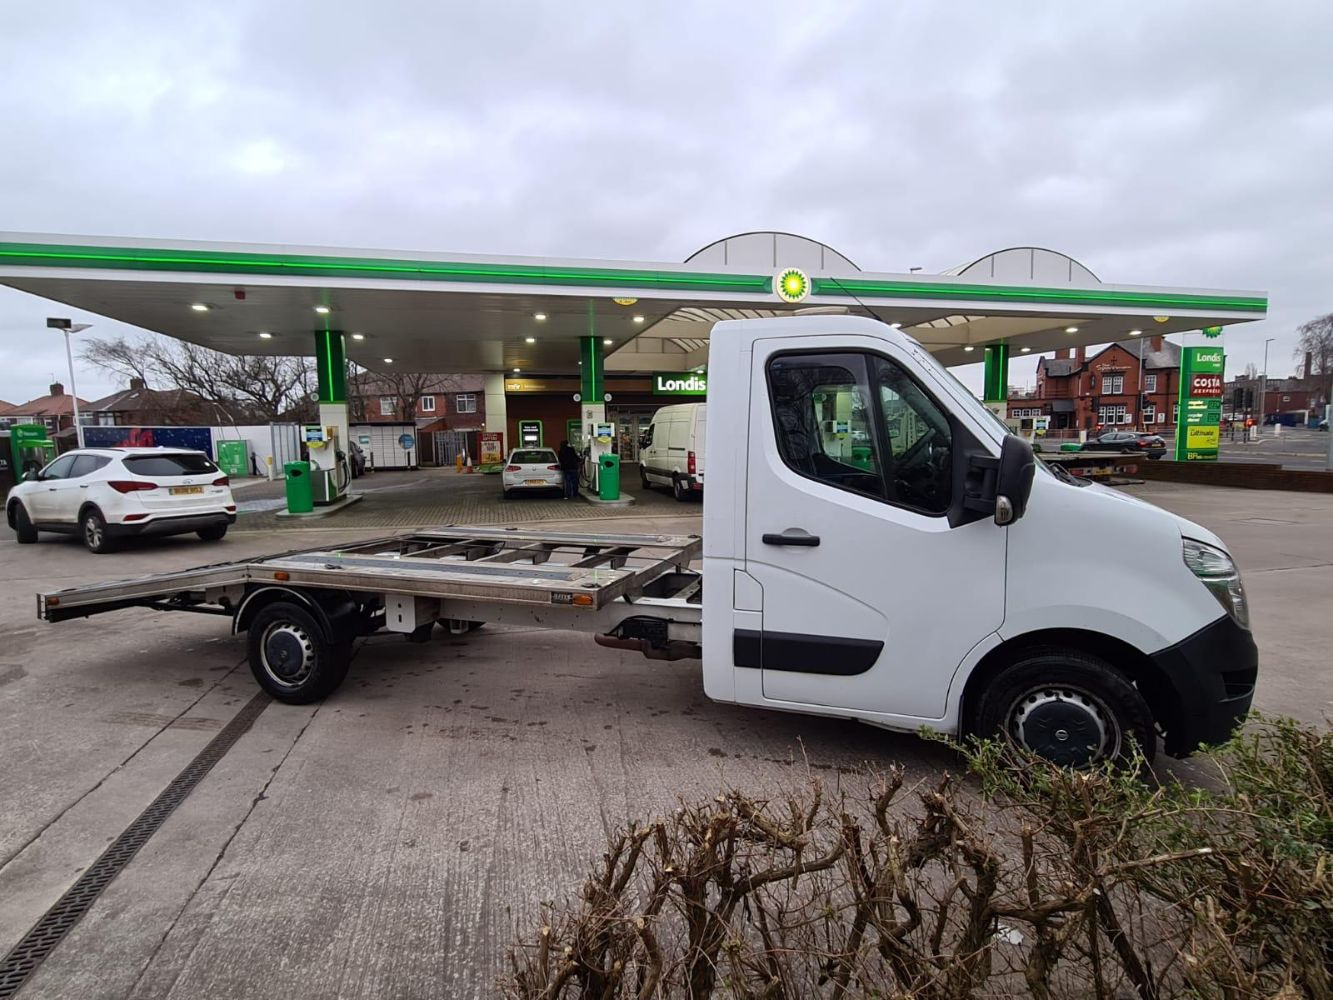 2019 FORD FIESTA 1.5 TDCI, 2017 NISSAN NV400 RECOVERY, MITSUBISHI FORKLIFTS, PORTALOO TOILET BLOCKS, ELECTRIC POWER TOWER, ALL ENDS 7PM TUESDAY!